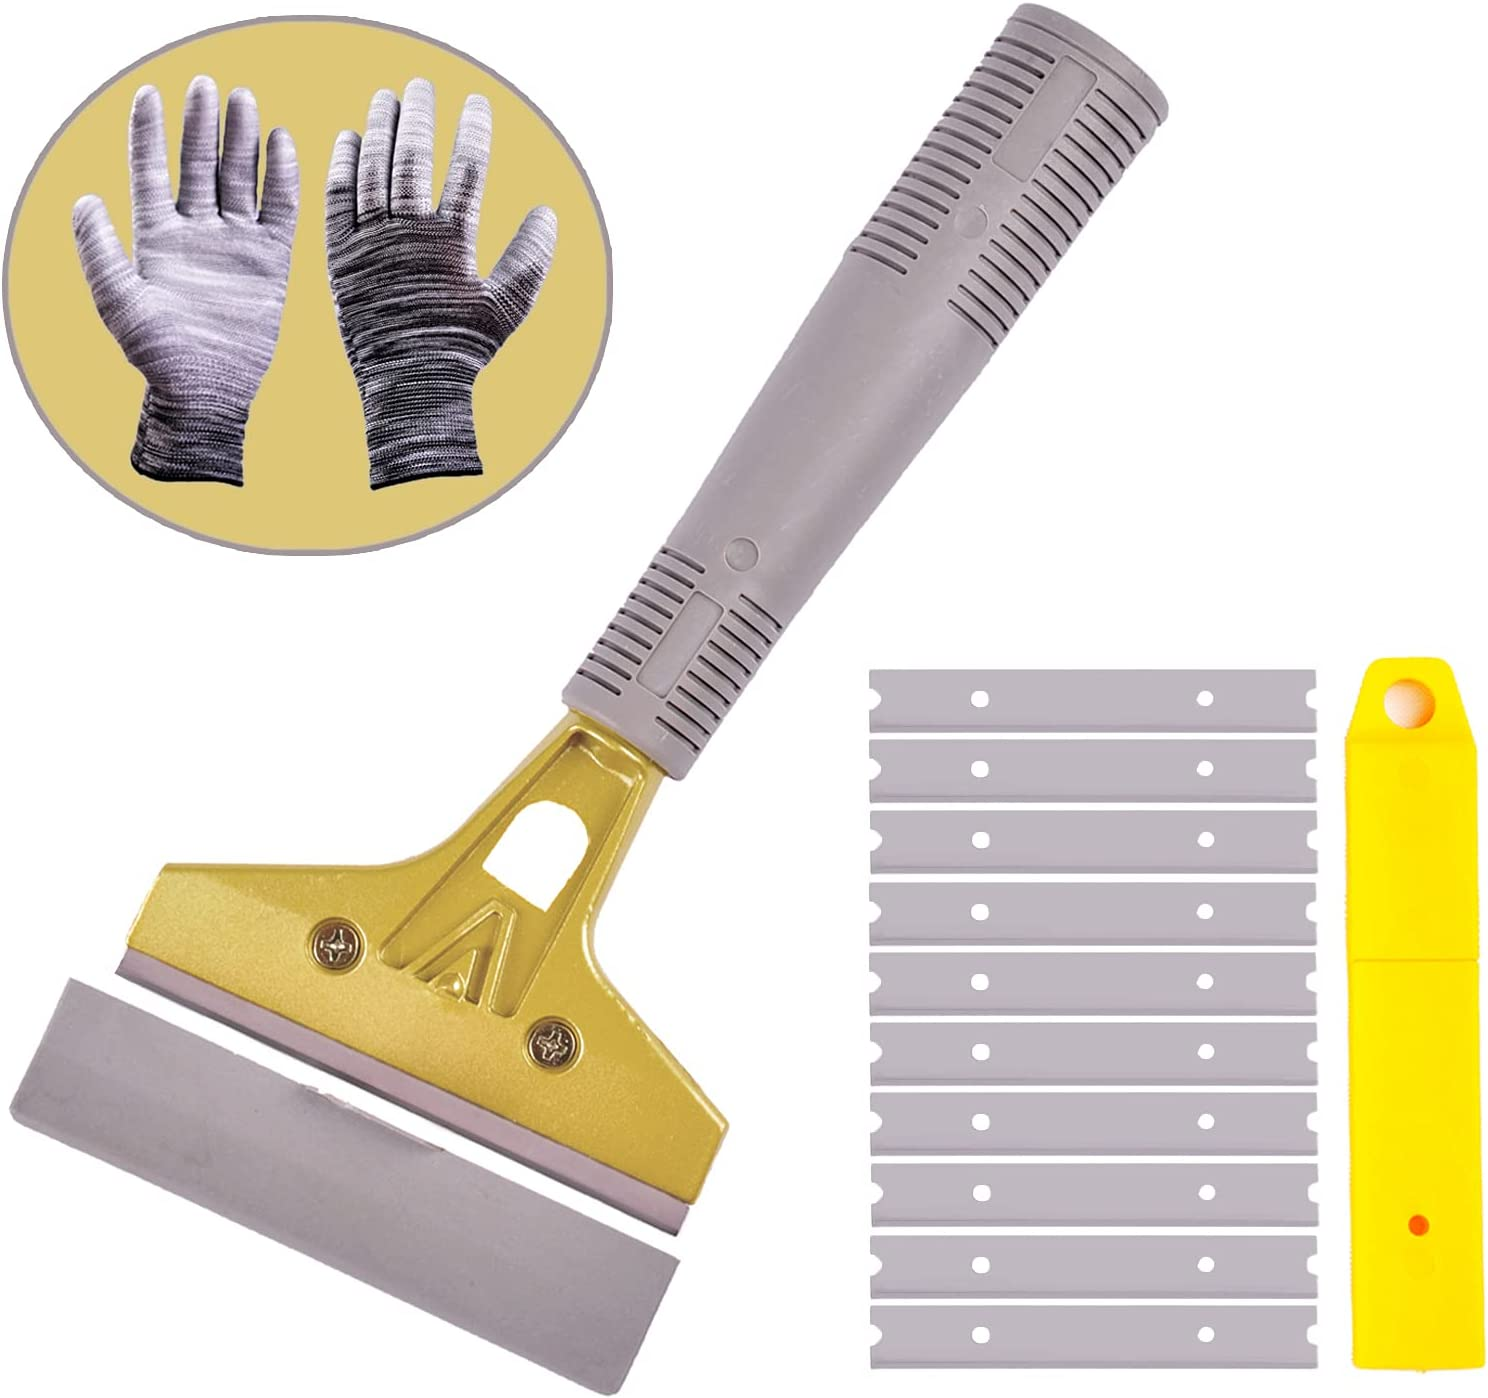 wanguan Razor Blade Scraper, 4 Inch Scraper Tools for Glass with 10PCS Replacable Blades, Multi Purpose Floor Scraper for Gum, Wall, Stove, Paint, Caulk, Labels, Adhesive, Sticker, Tile (With Gloves)